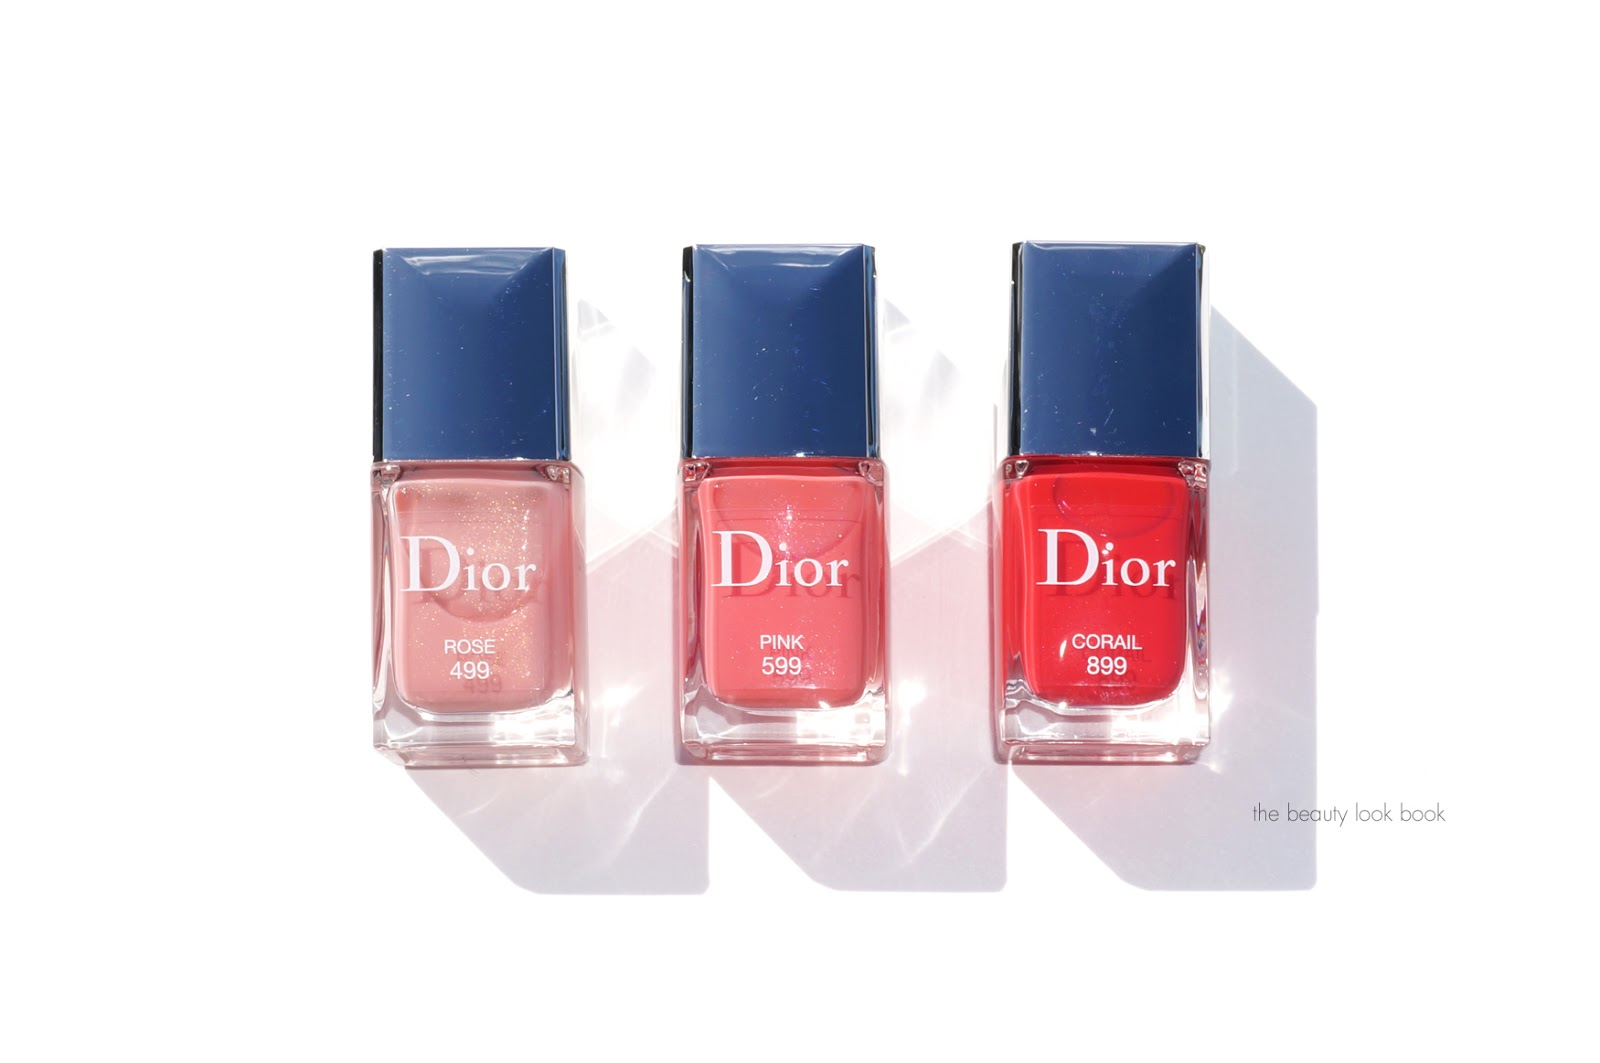 Dior Vernis in Rose 499, Pink 599 and Corail 899   The Beauty Look Book